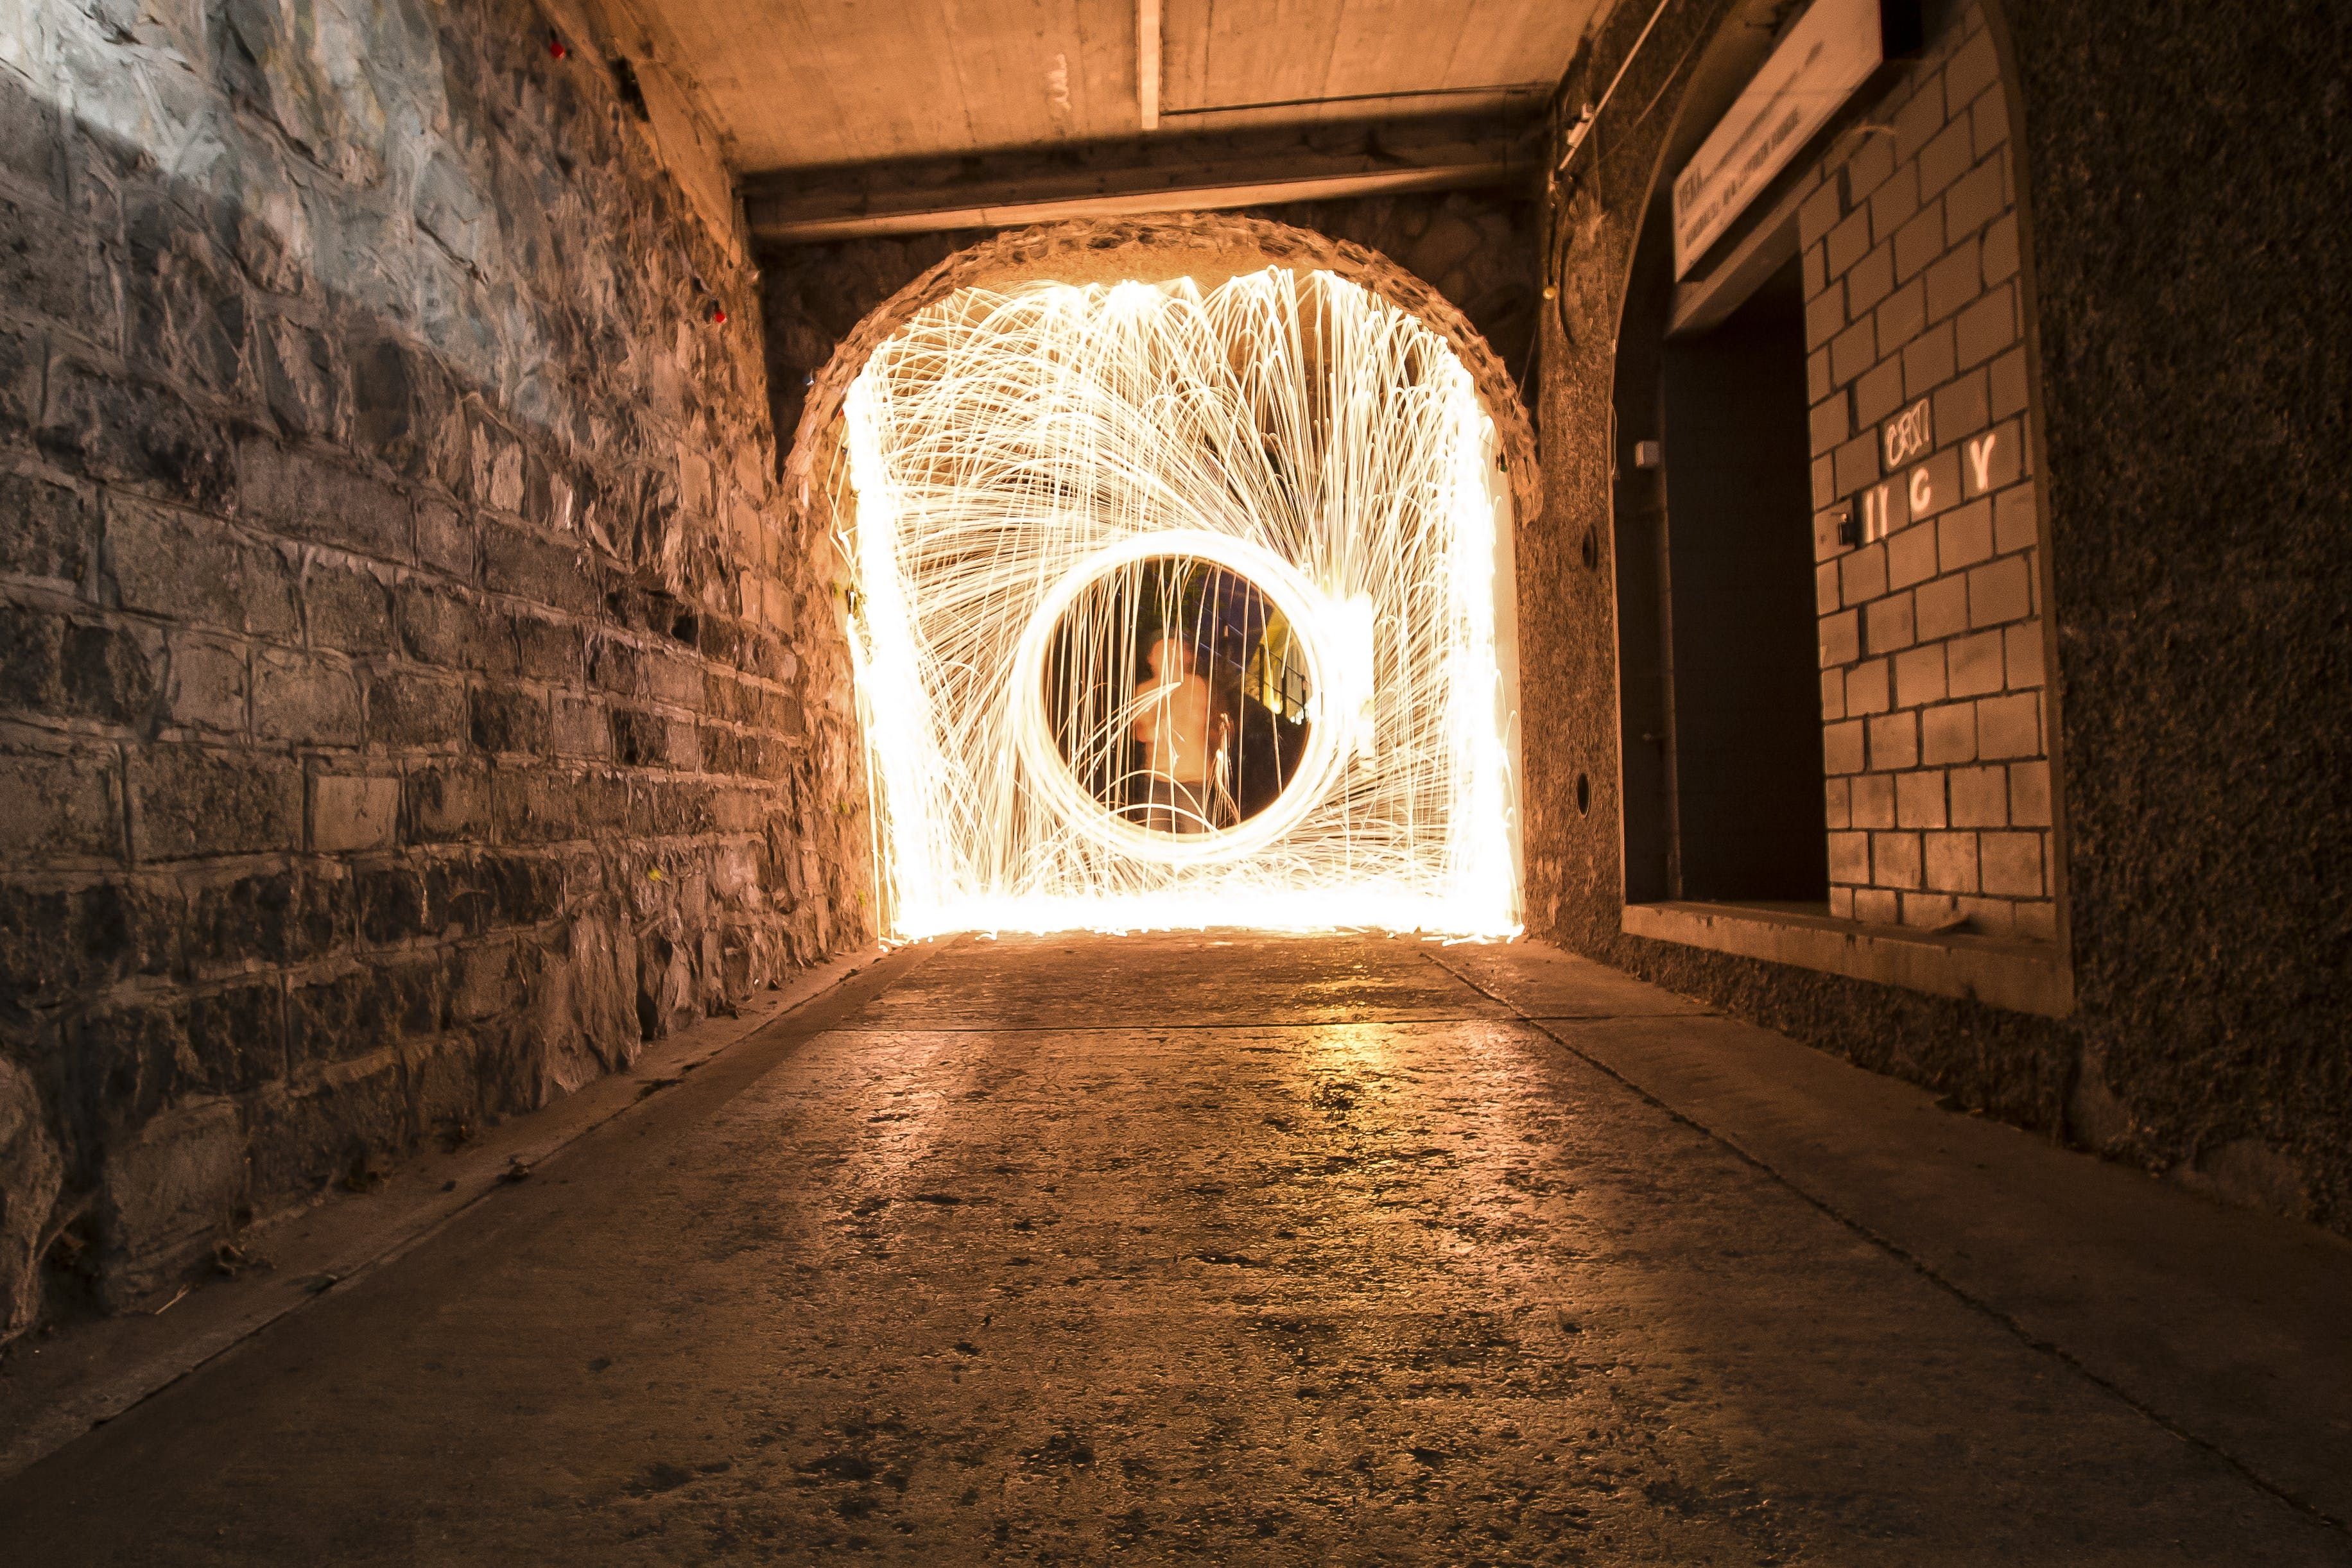 Timelapse Photo of Man in Hallway With Light